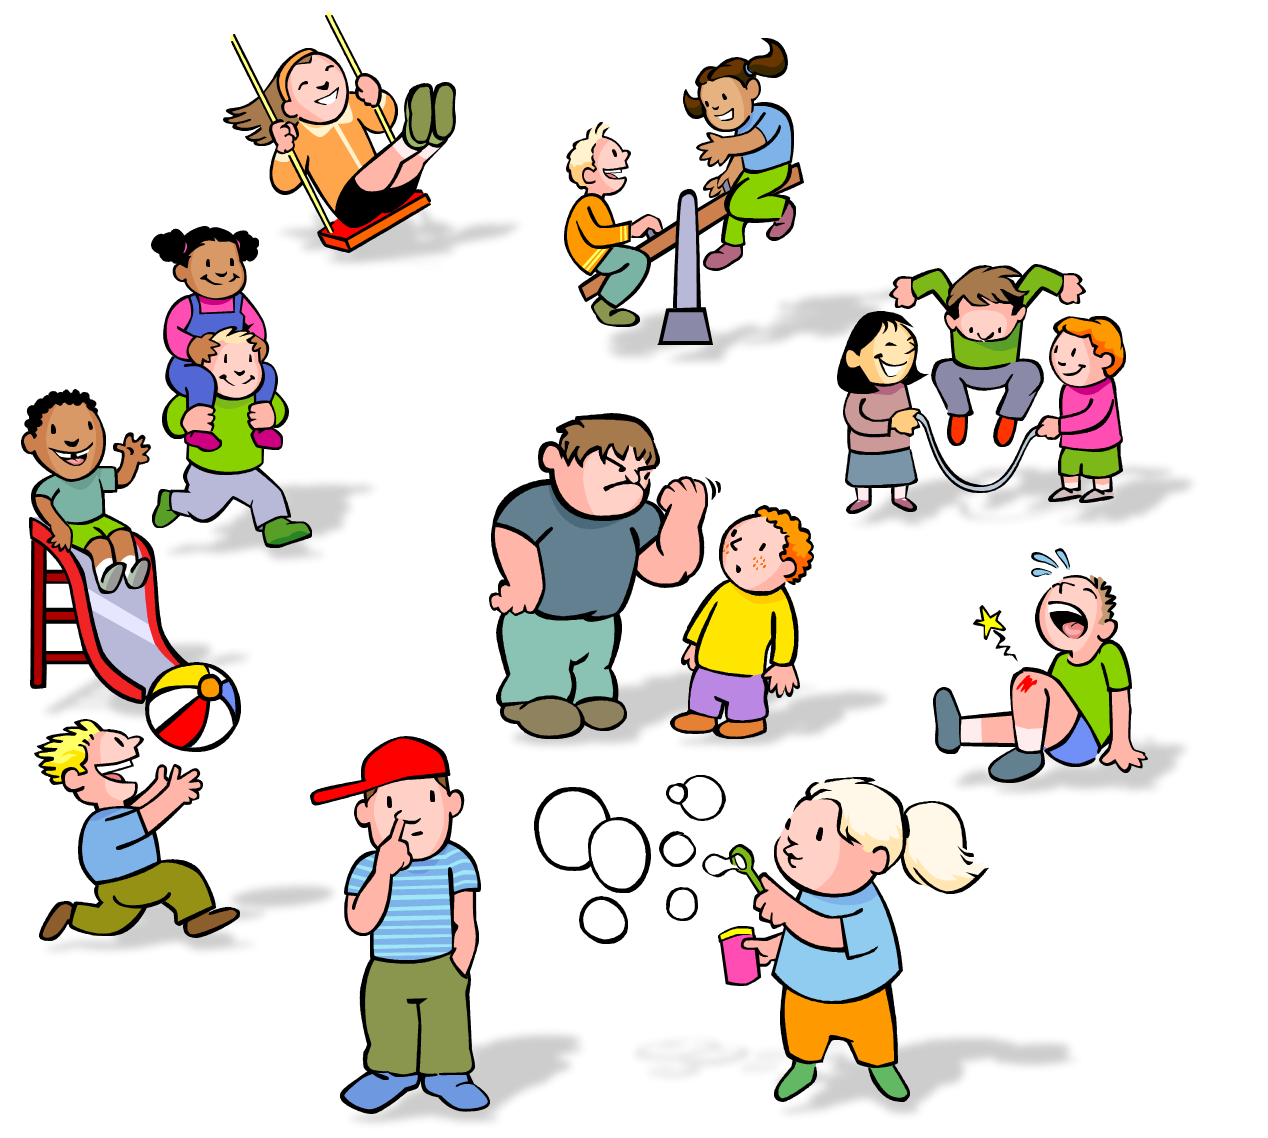 School behavior clipart clipart images gallery for free.